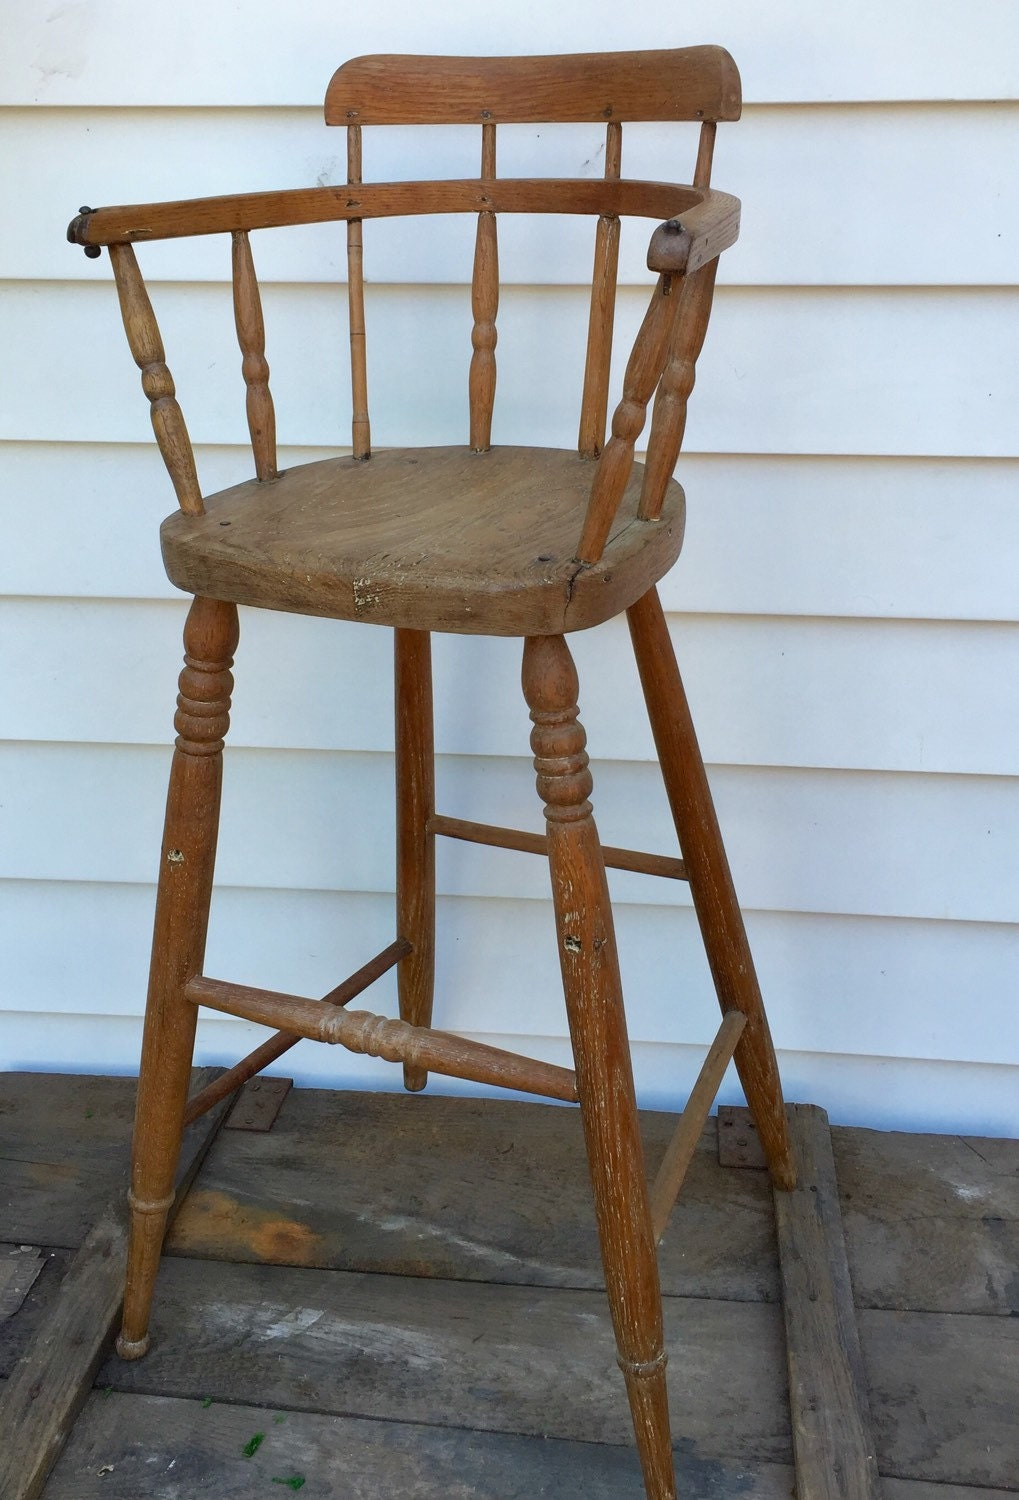 Unique Antique Doll Or Baby High Chair Handmade Of Wood